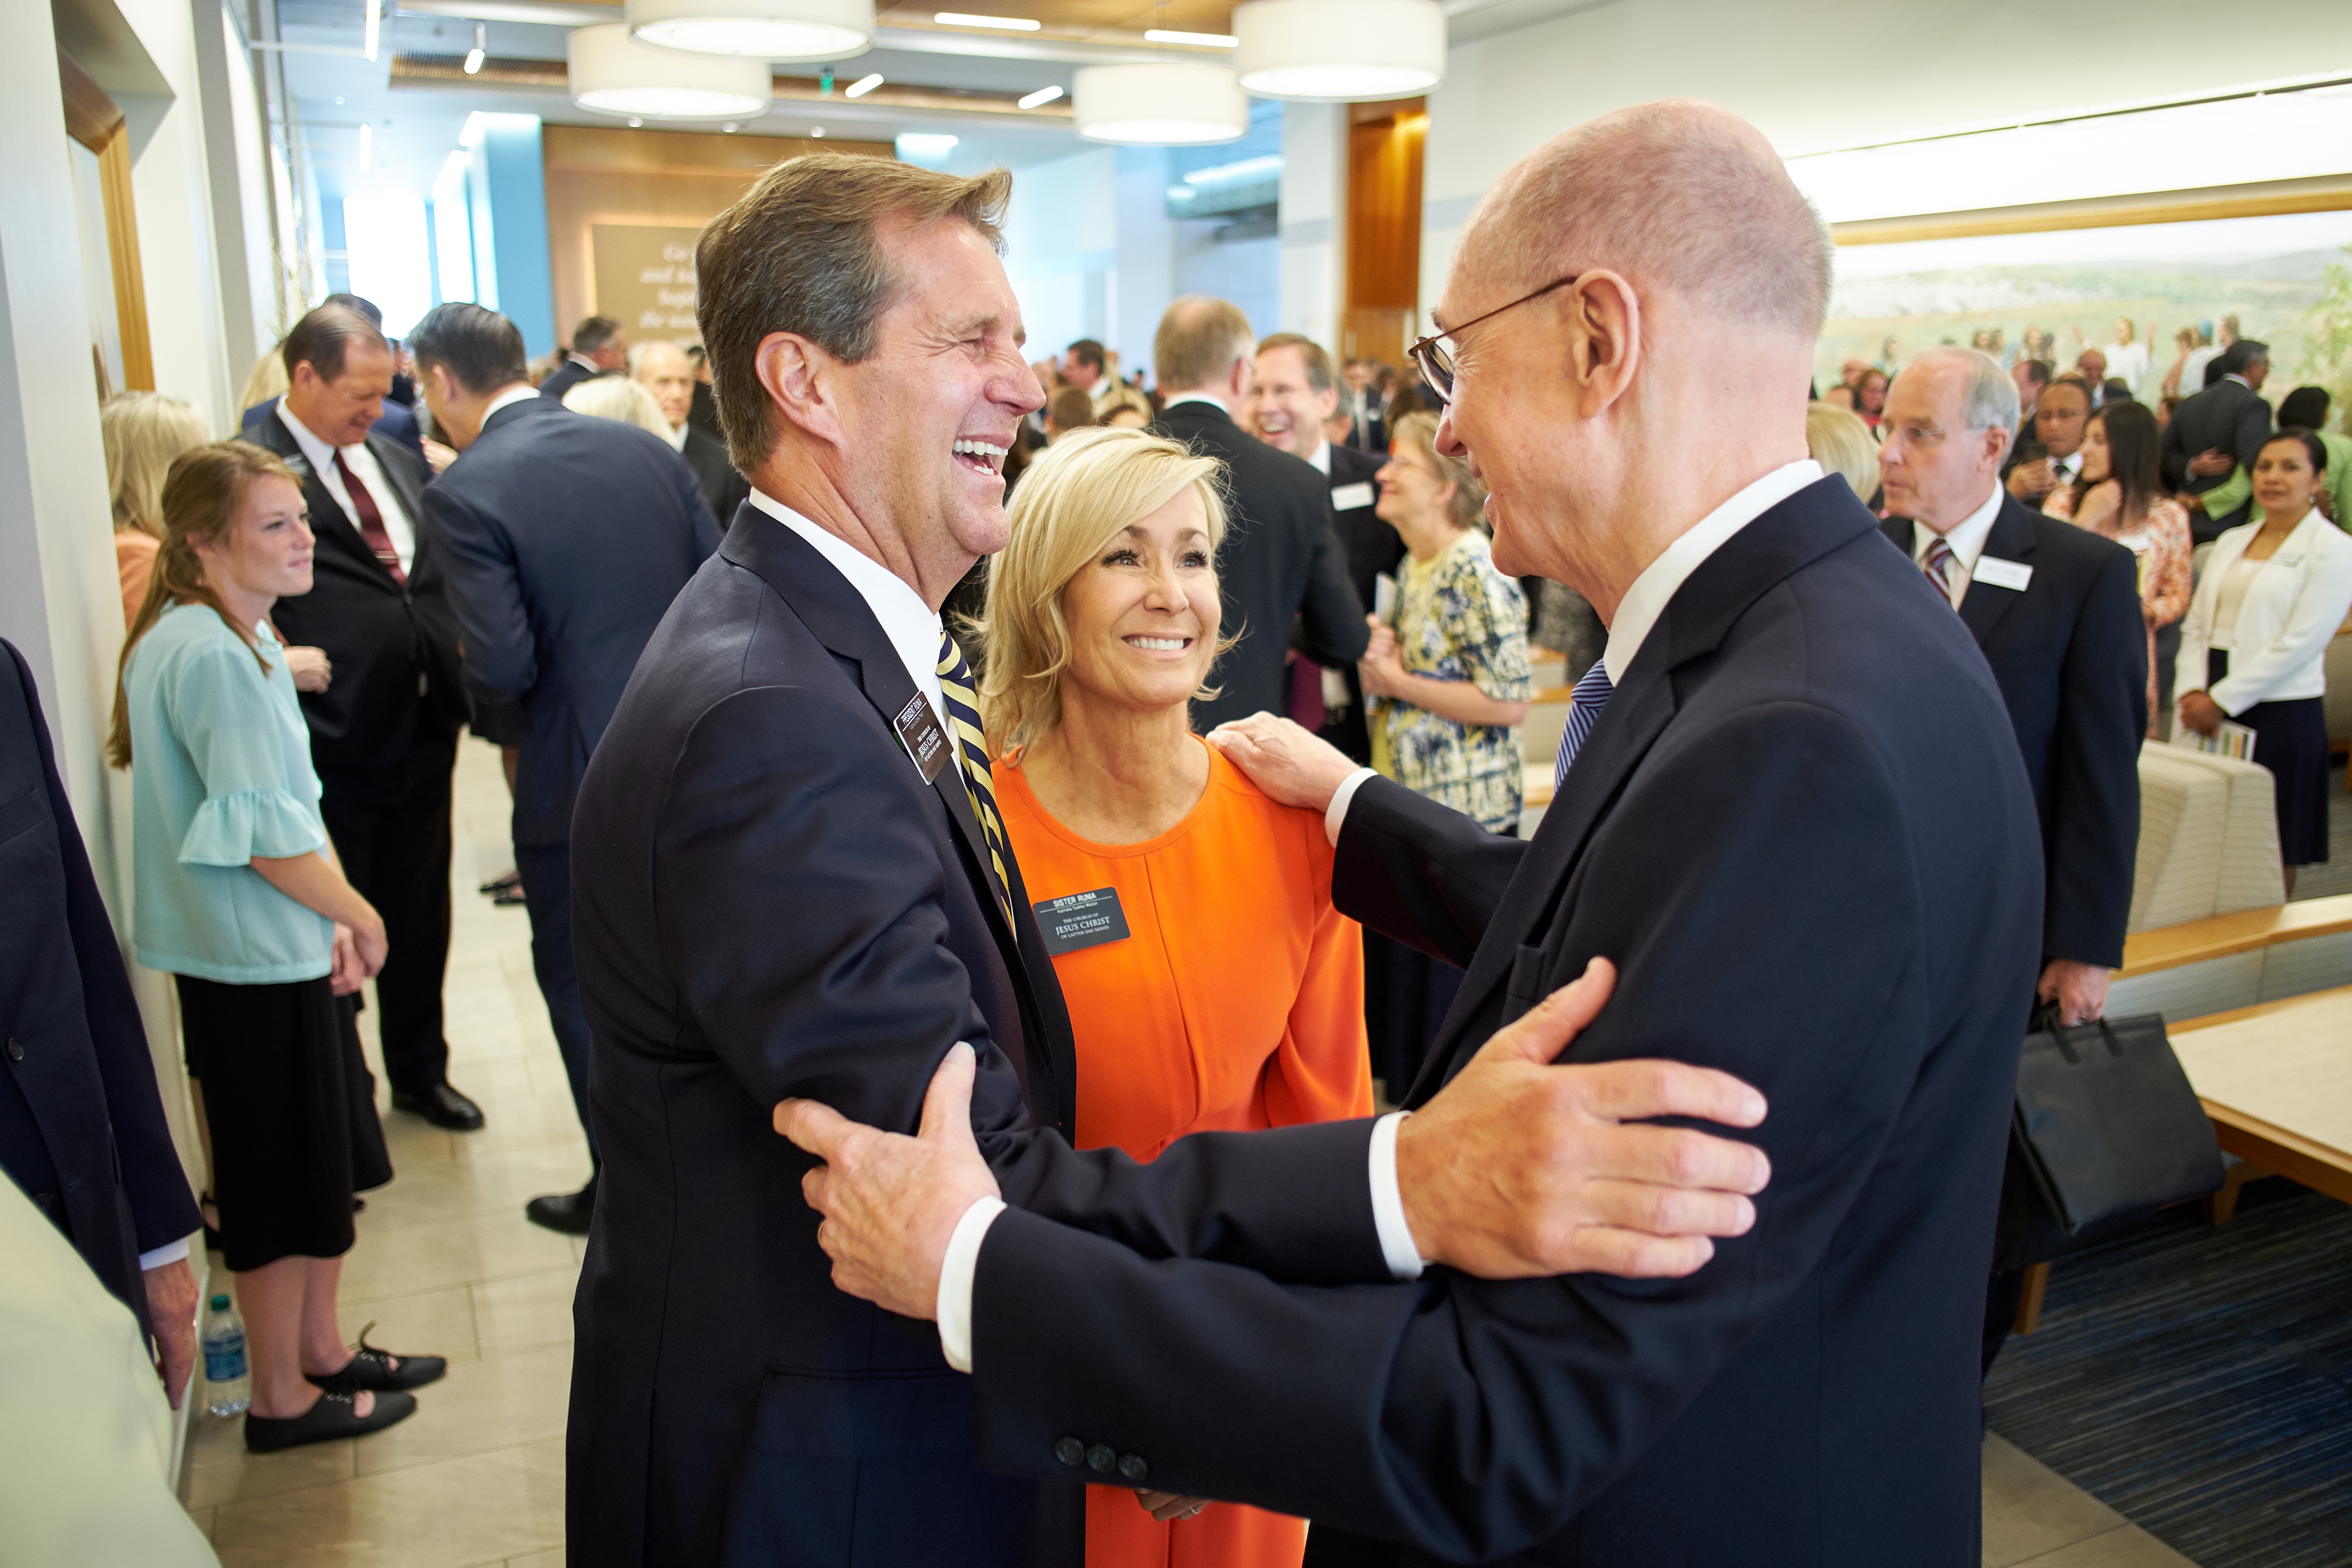 President Henry B. Eyring, second counselor in the First Presidency, greets President R. Scott Runia and his wife, Sister Tammy W. Runia, during the 2018 Mission Leadership Seminar held in the Provo MTC June 24-26.